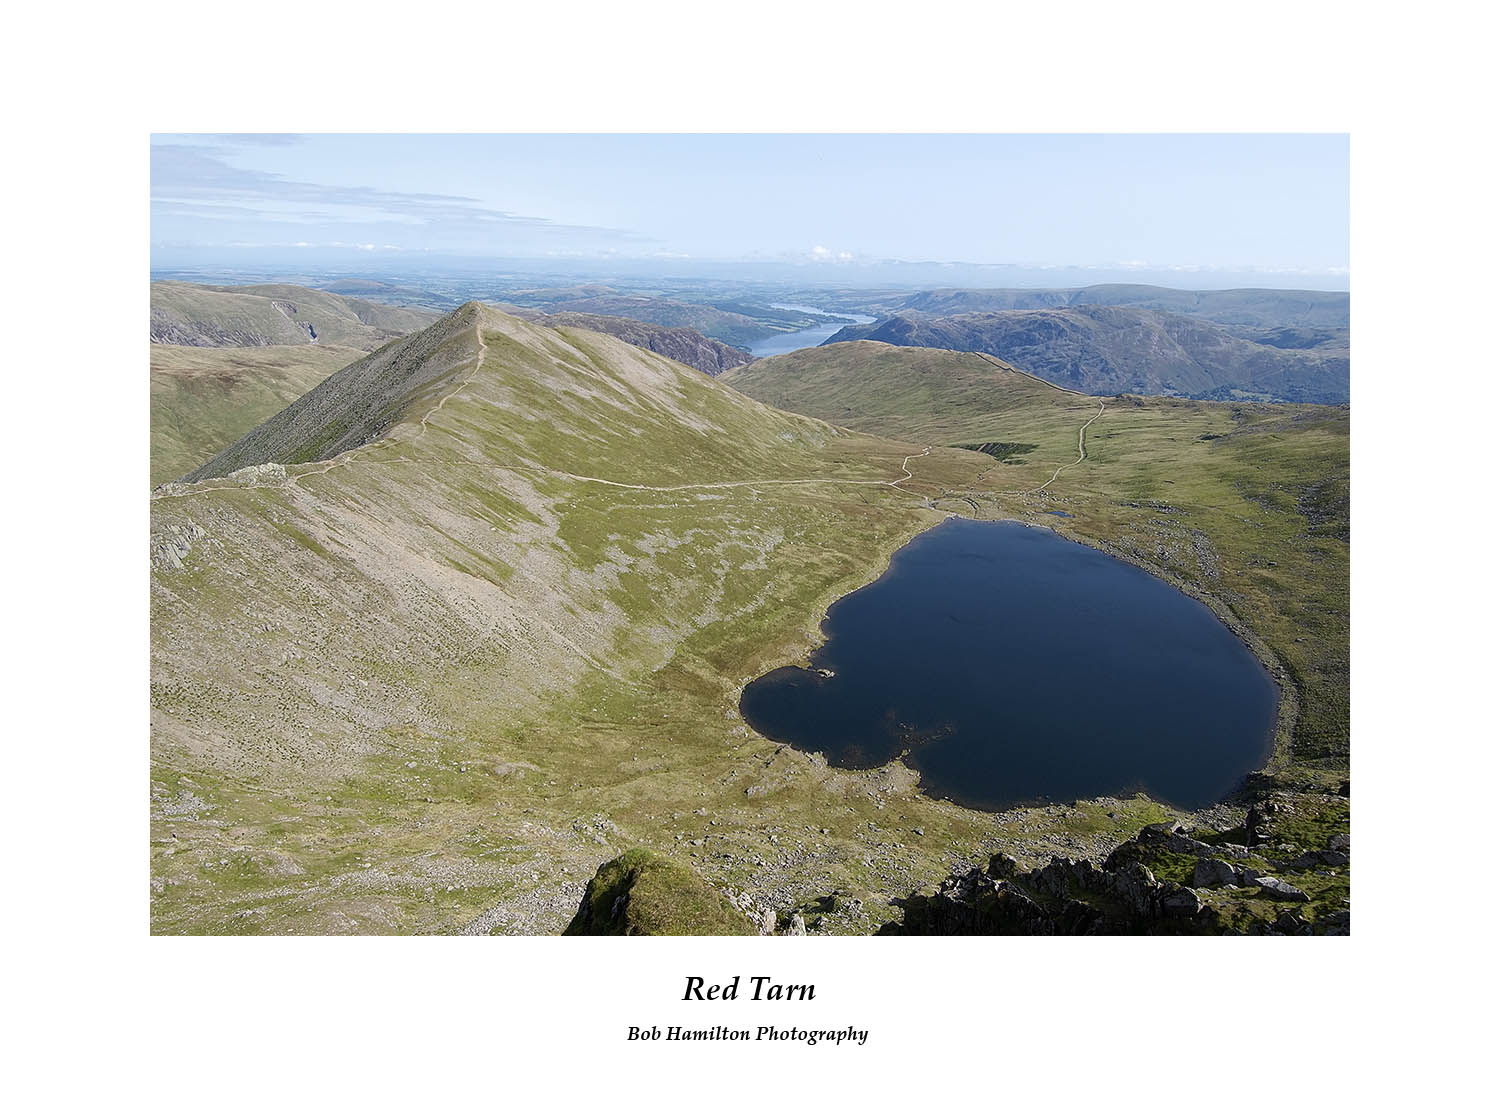 DSF1072 Catstye Cam and Red Tarn from Helvellyn